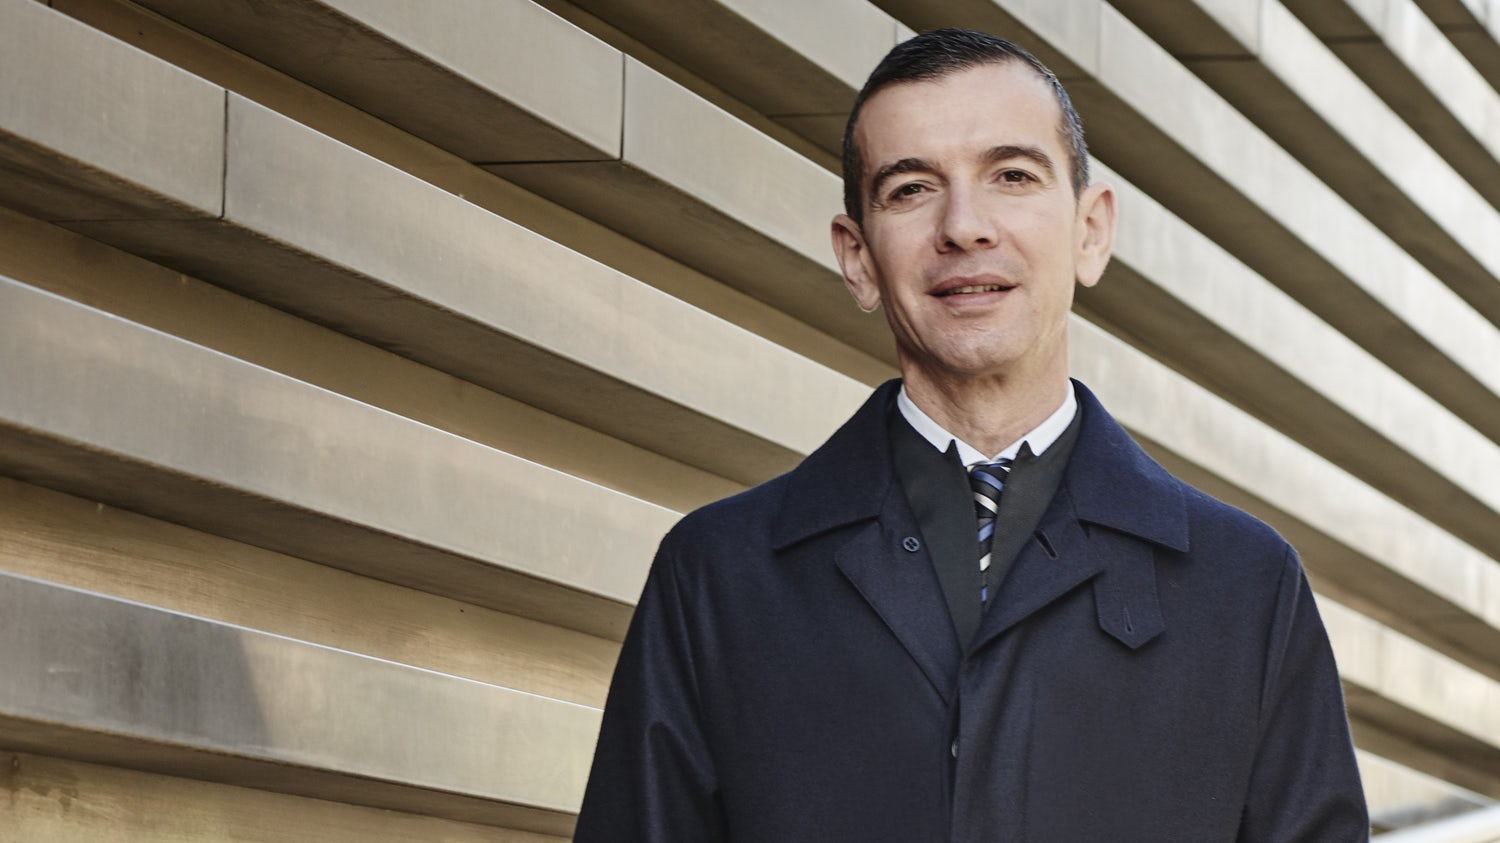 Ferragamo Appoints New Marketing Head Amid Management Restructuring